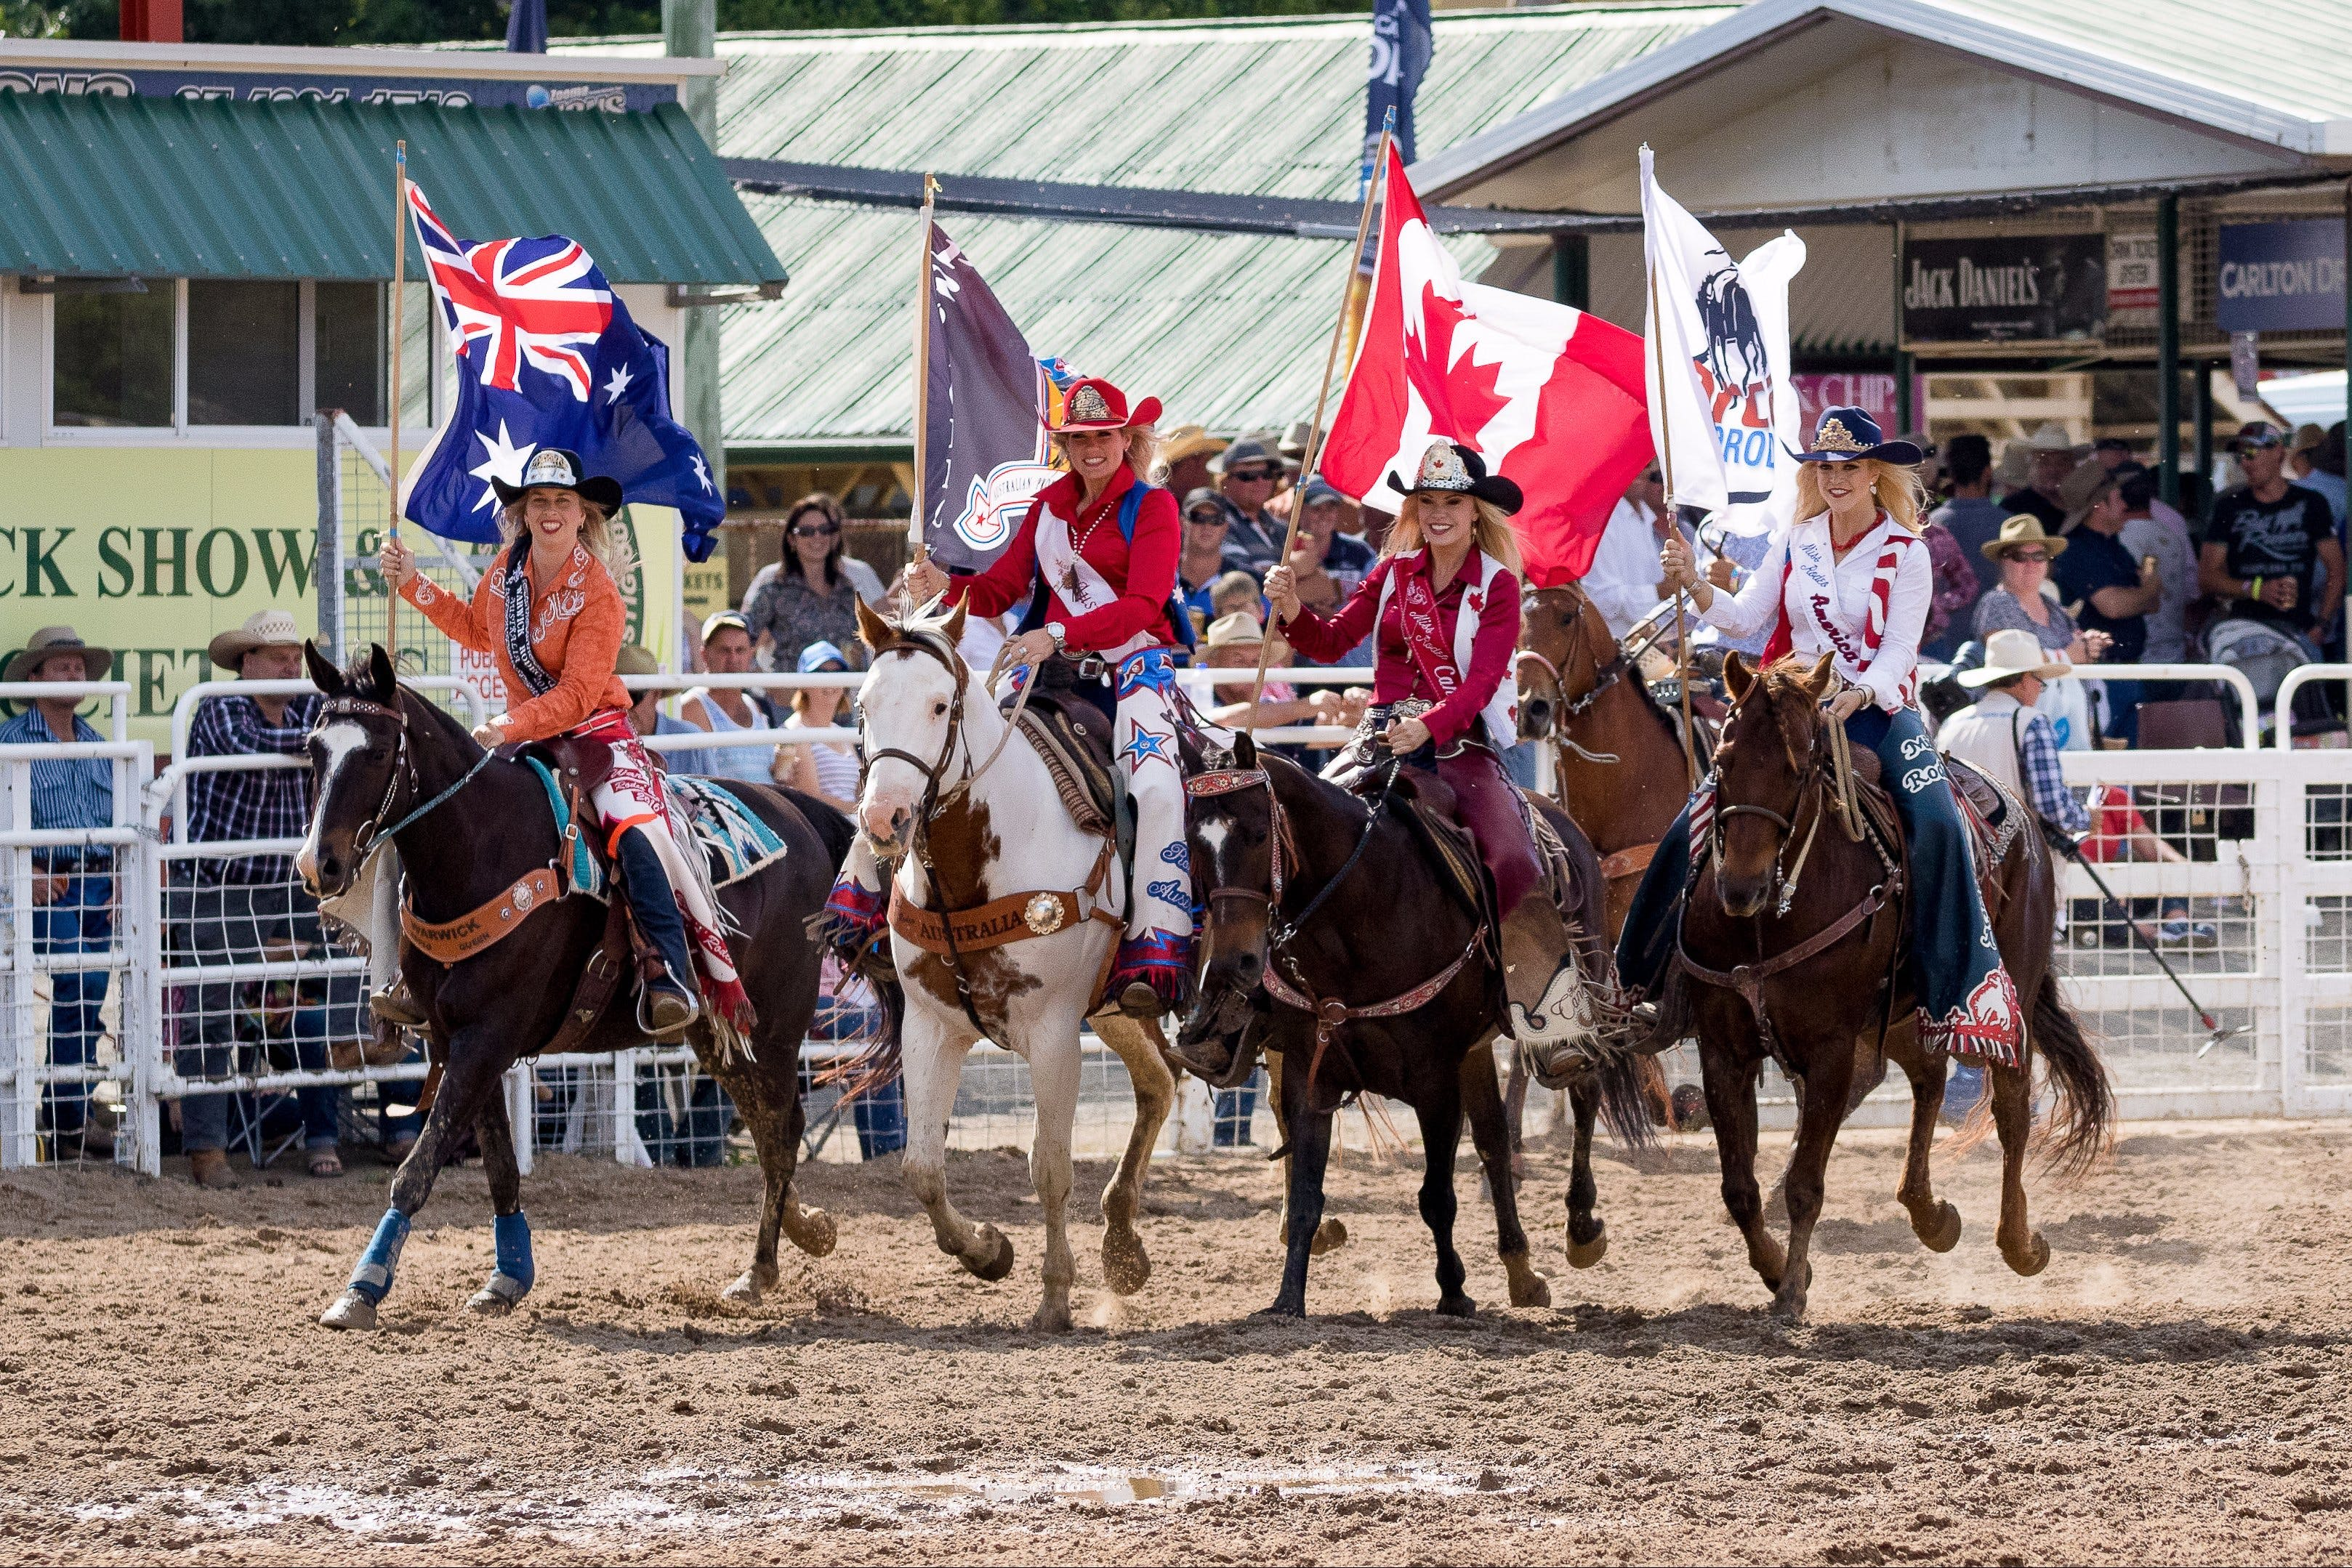 Warwick Rodeo National APRA National Finals and Warwick Gold Cup Campdraft - Tourism Brisbane